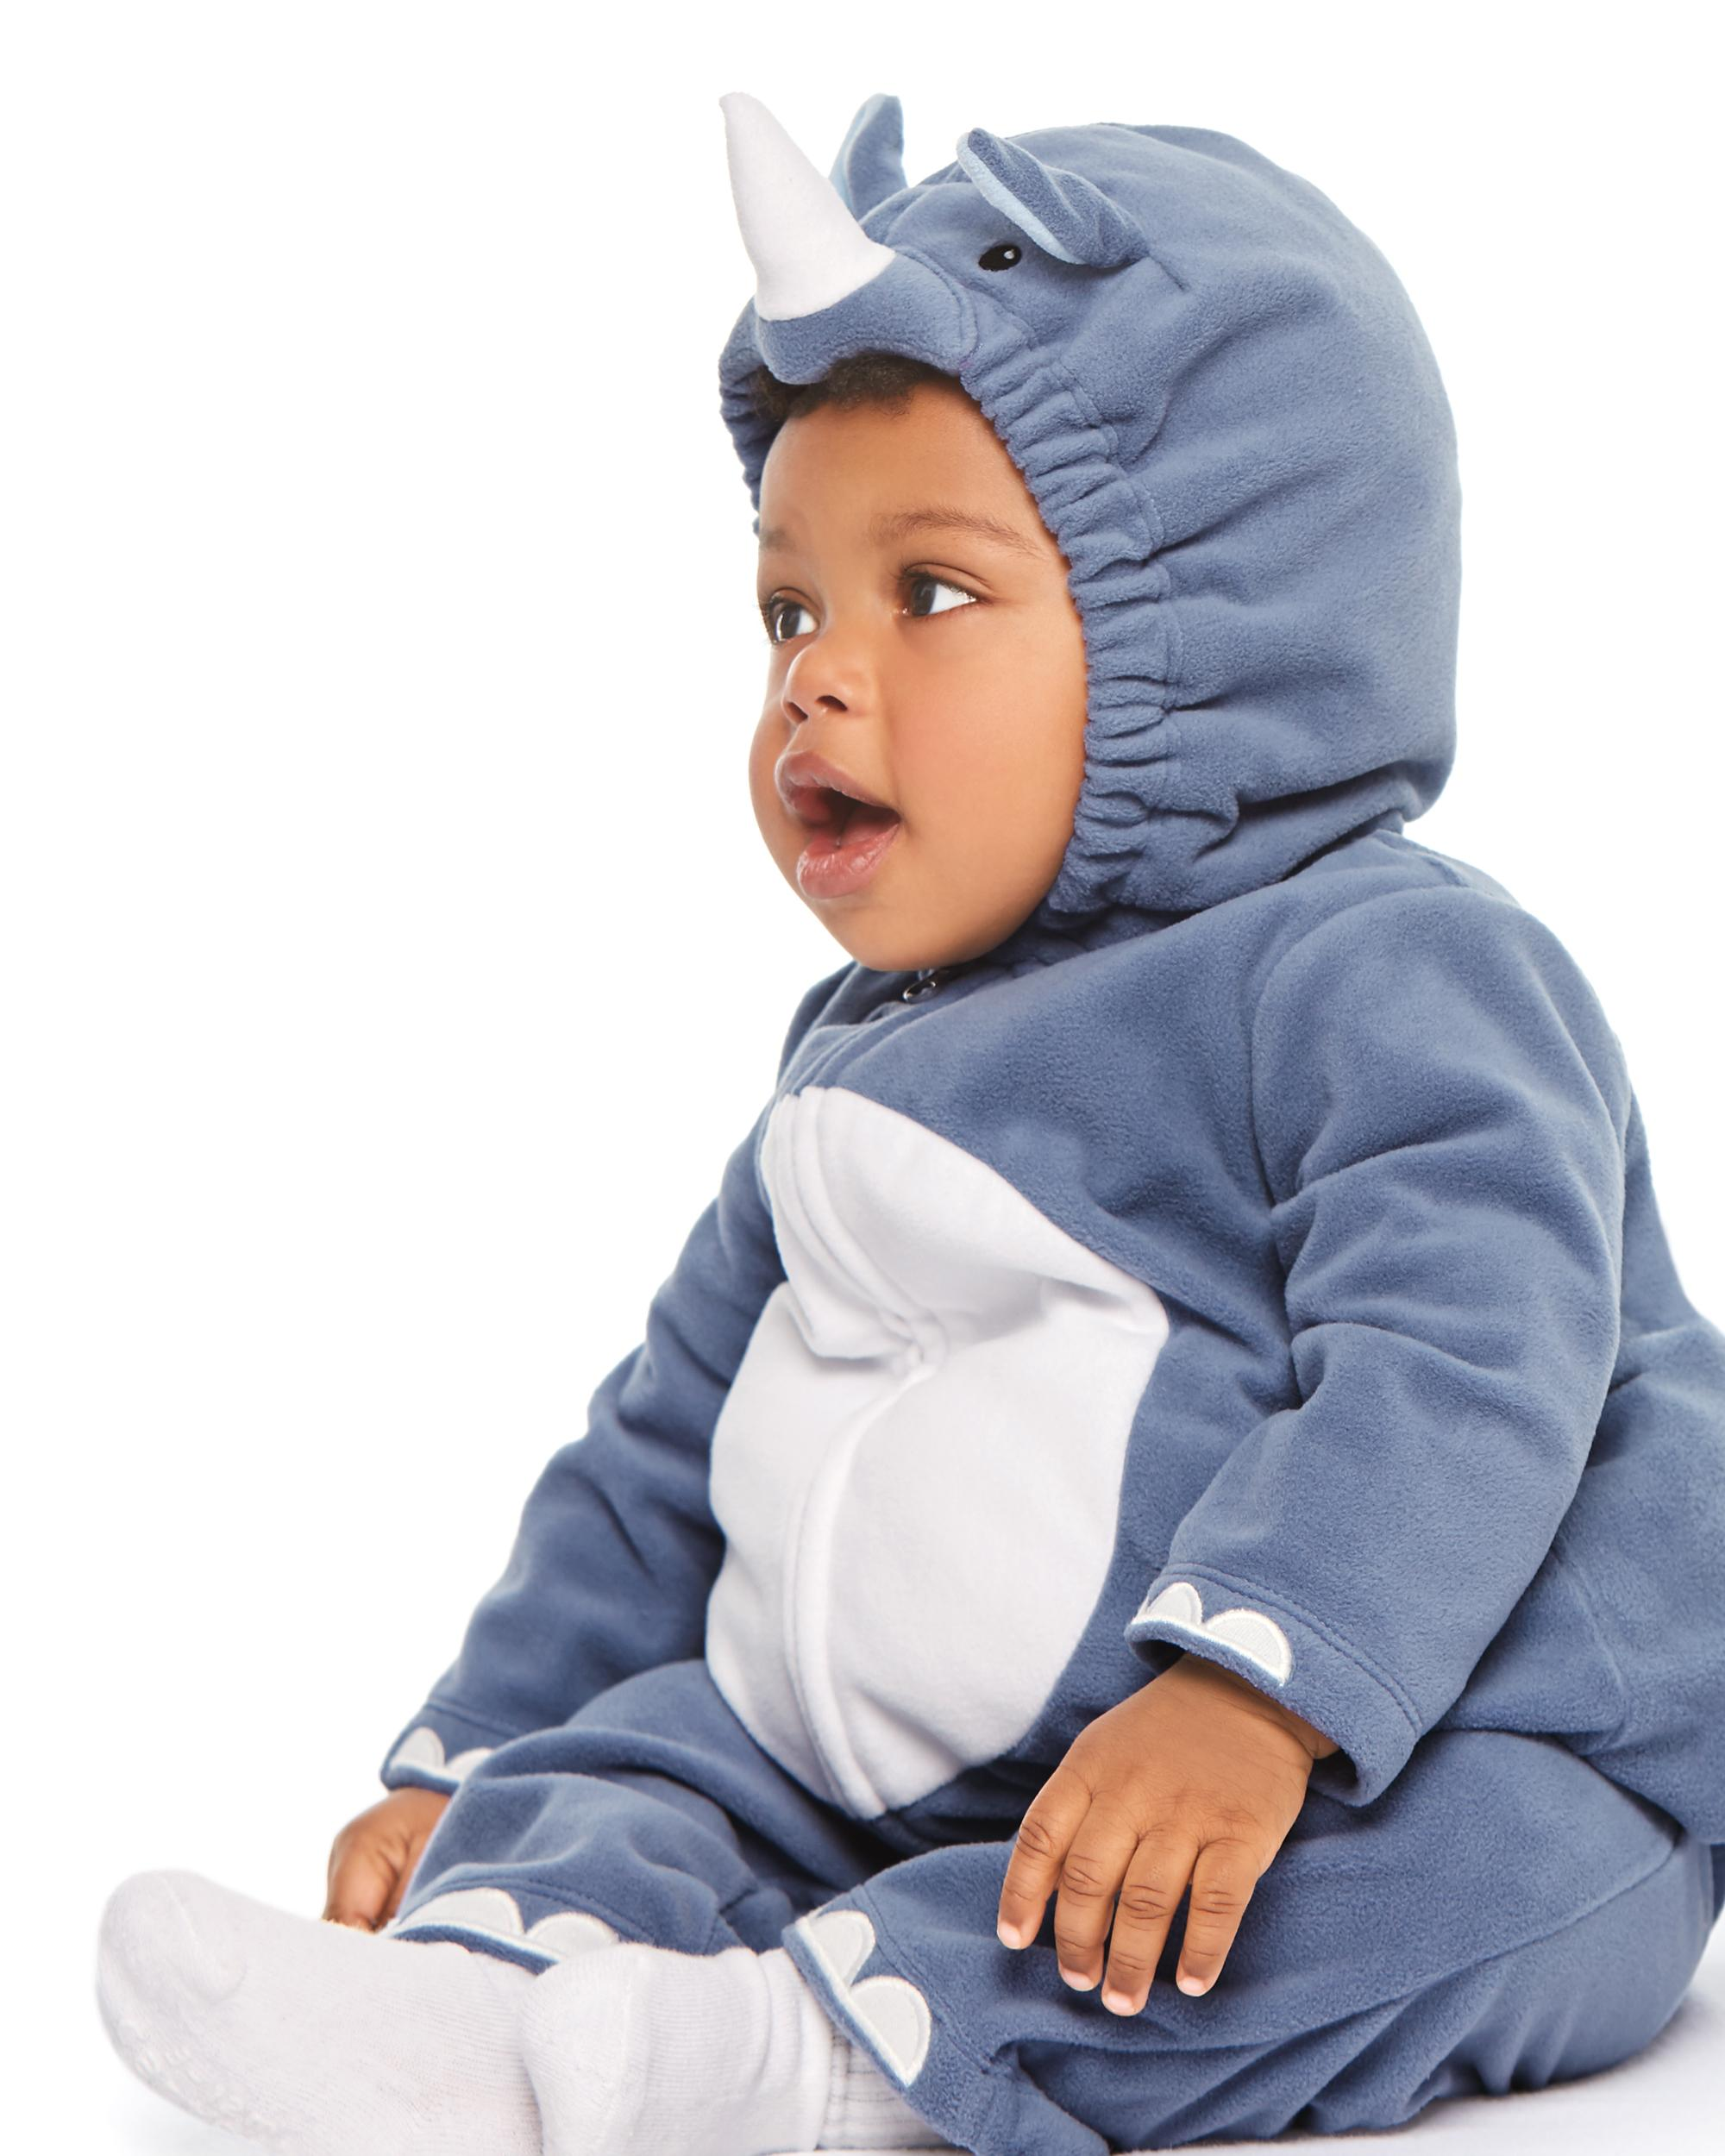 Halloween Costume 6 9 Months Uk.Little Rhino Halloween Costume Carters Com